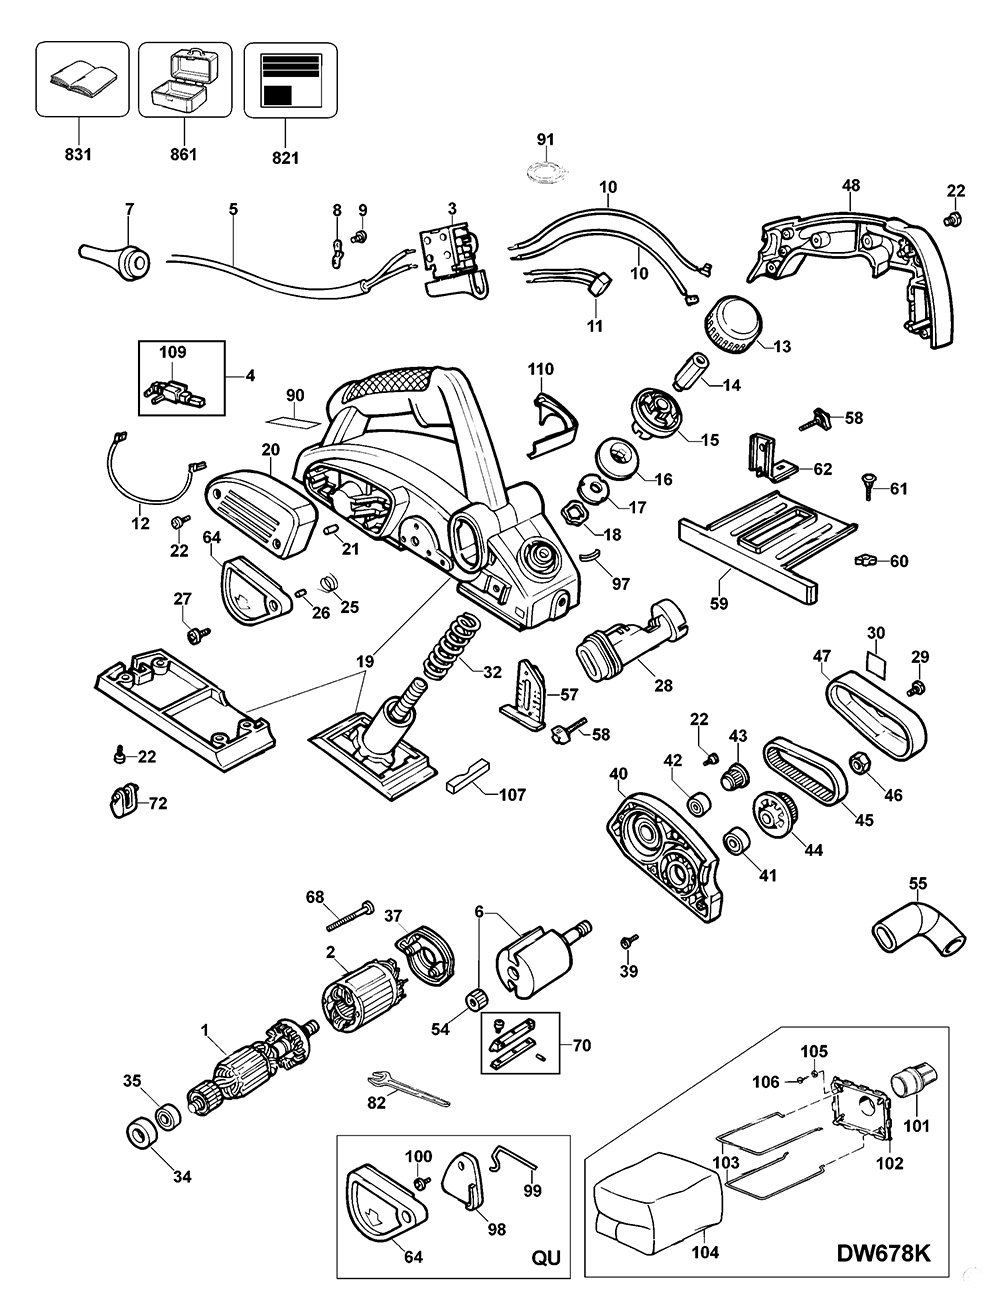 82 electric planer parts